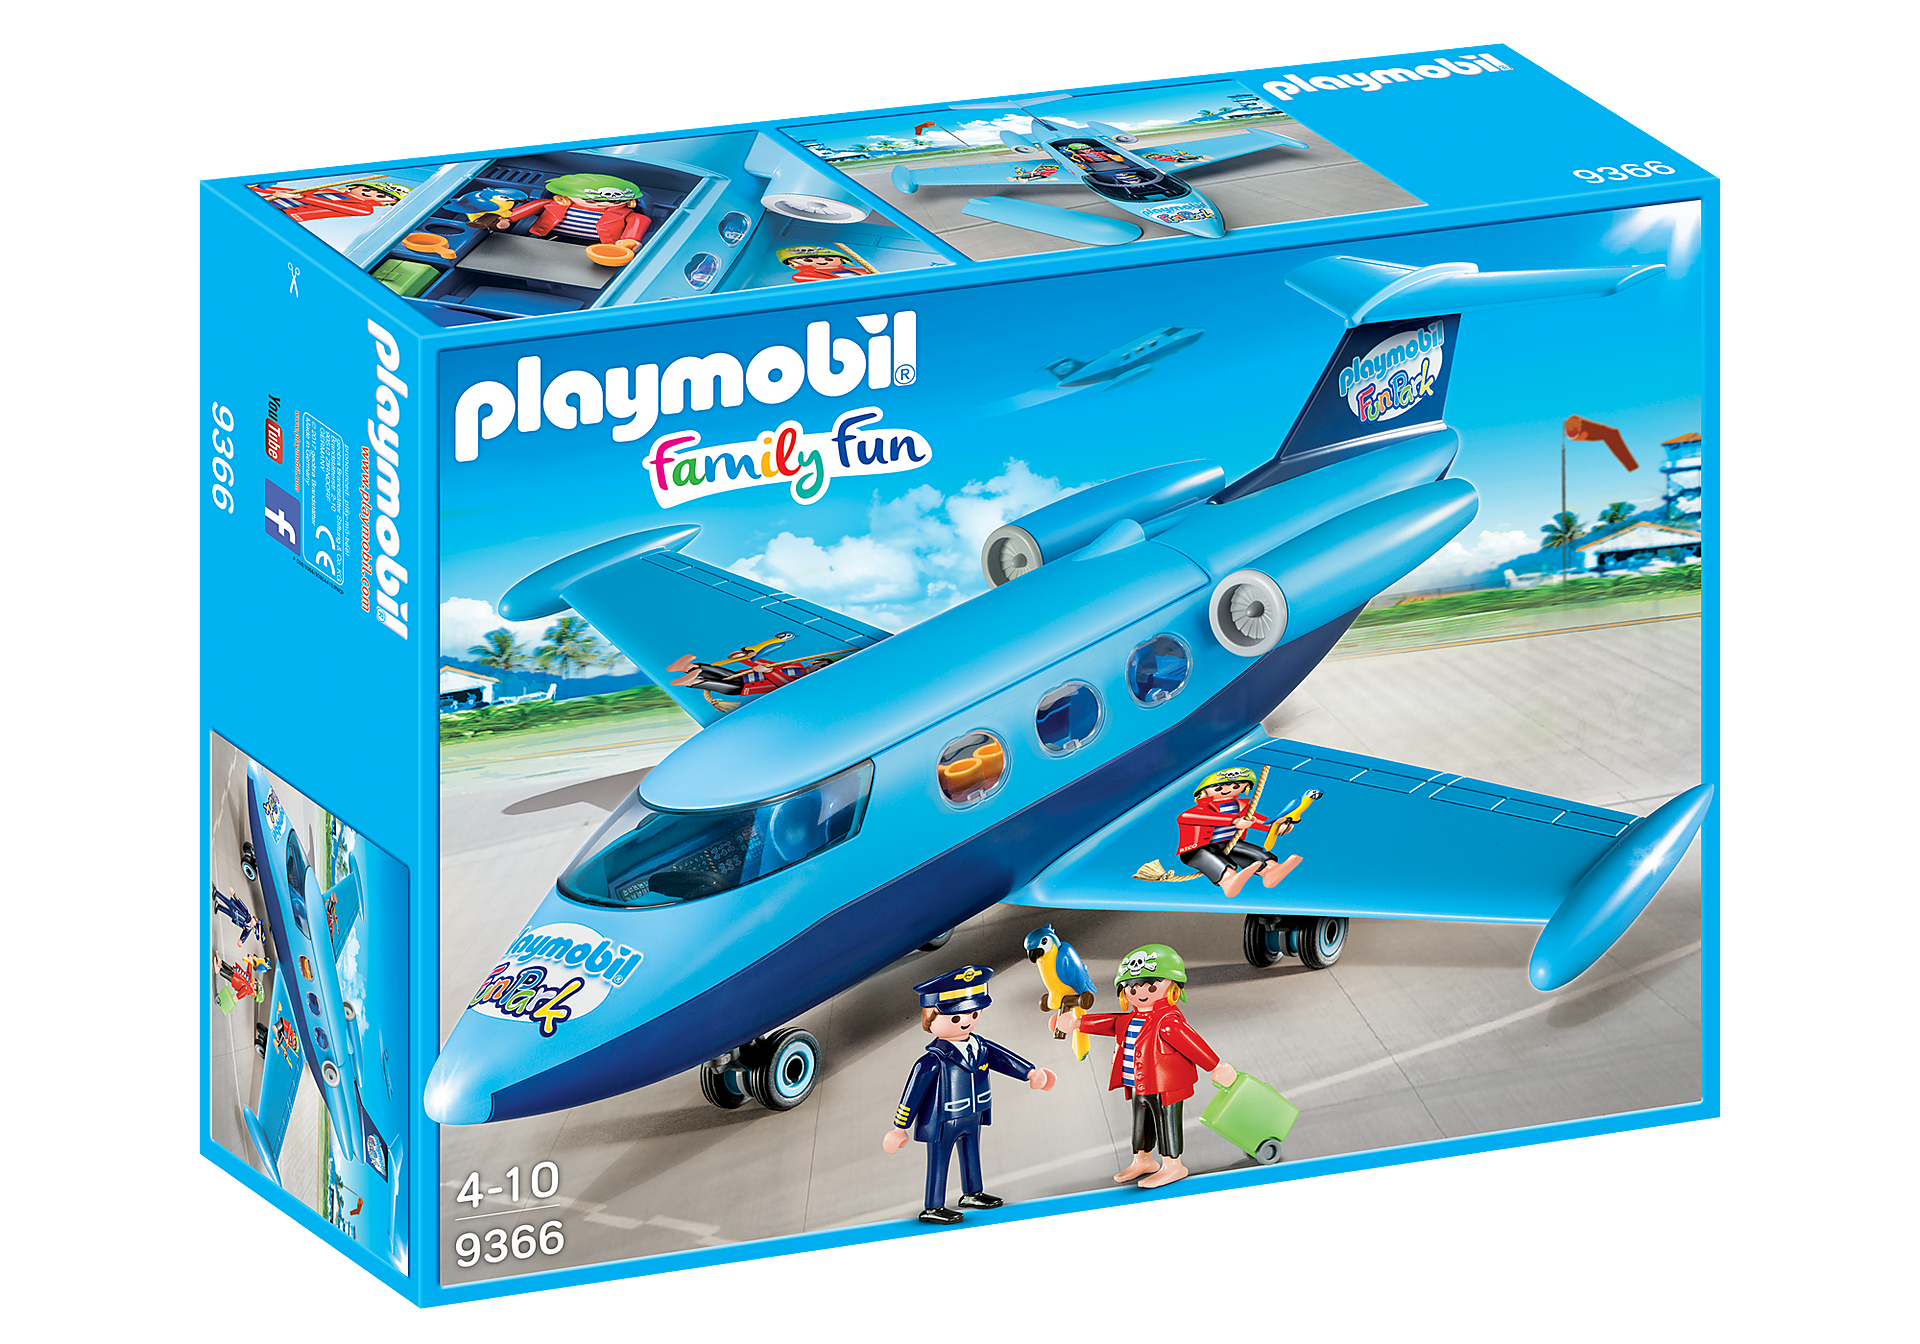 http://media.playmobil.com/i/playmobil/9366_product_box_front/PLAYMOBIL-FunPark Summer Jet